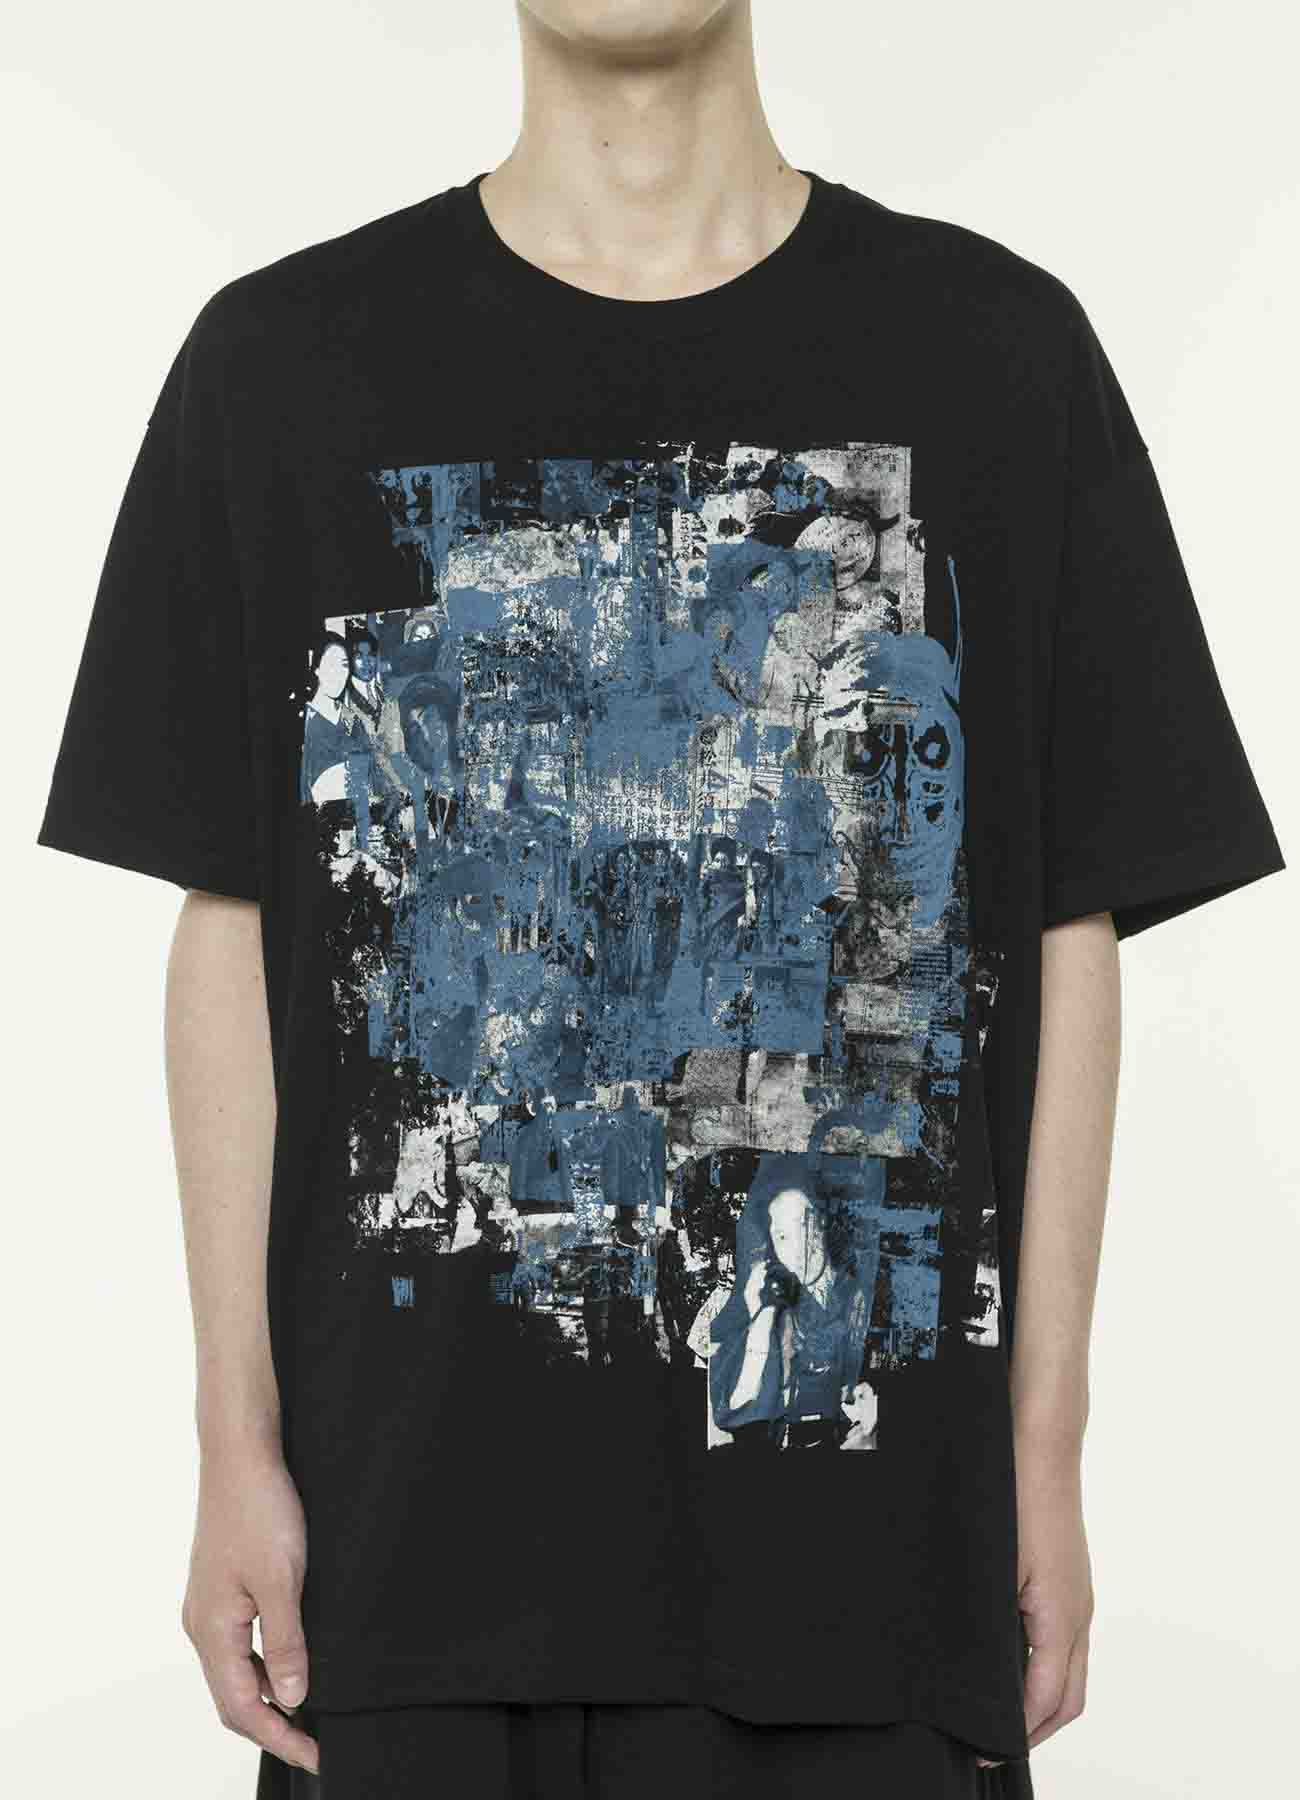 20/CottonJersey Incident 5-18 Collage T-Shirt *Masterpiece reproduction